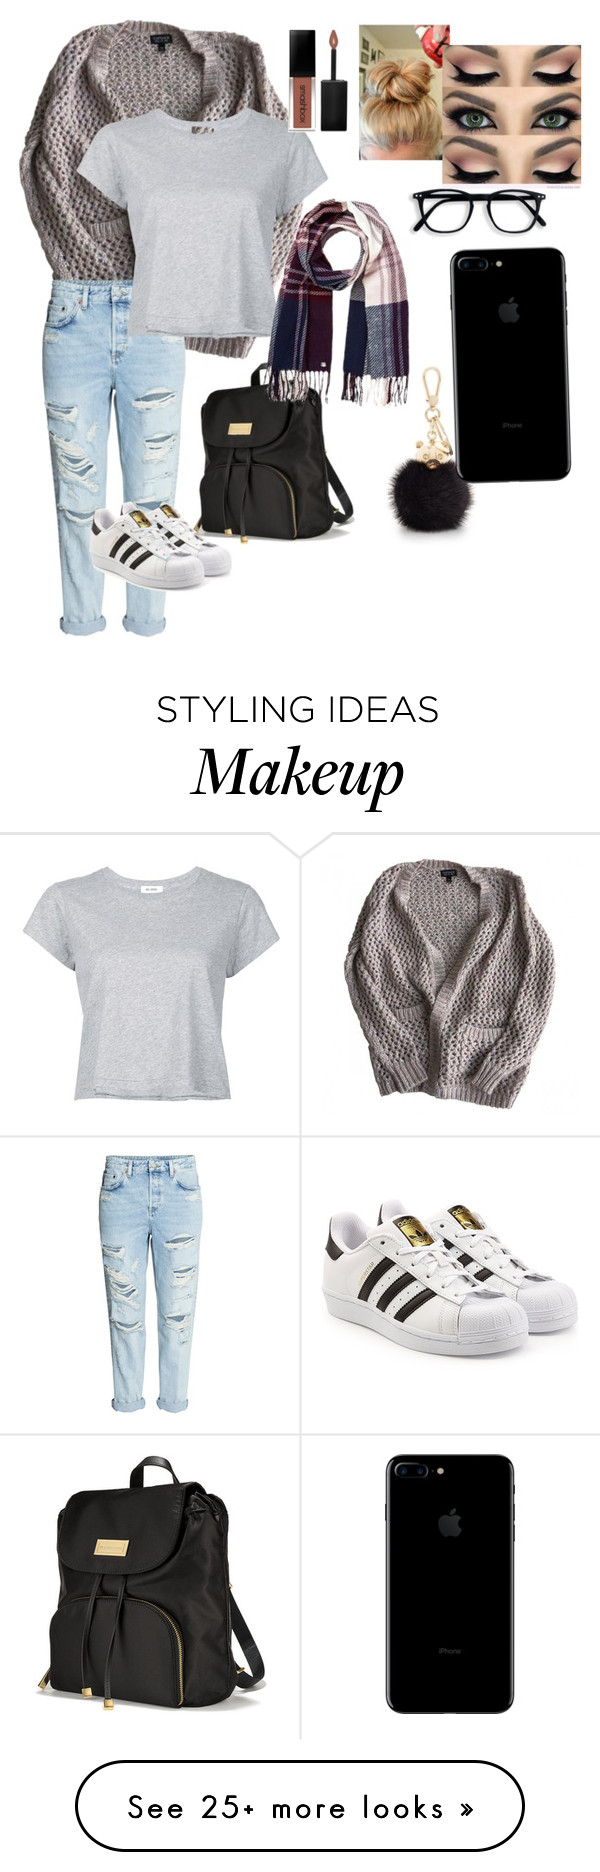 """<3"" by autumn1113 on Polyvore featuring Topshop, RE/DONE, adidas Originals, Smashbox, Victoria's Secret, Furla and Lipsy"